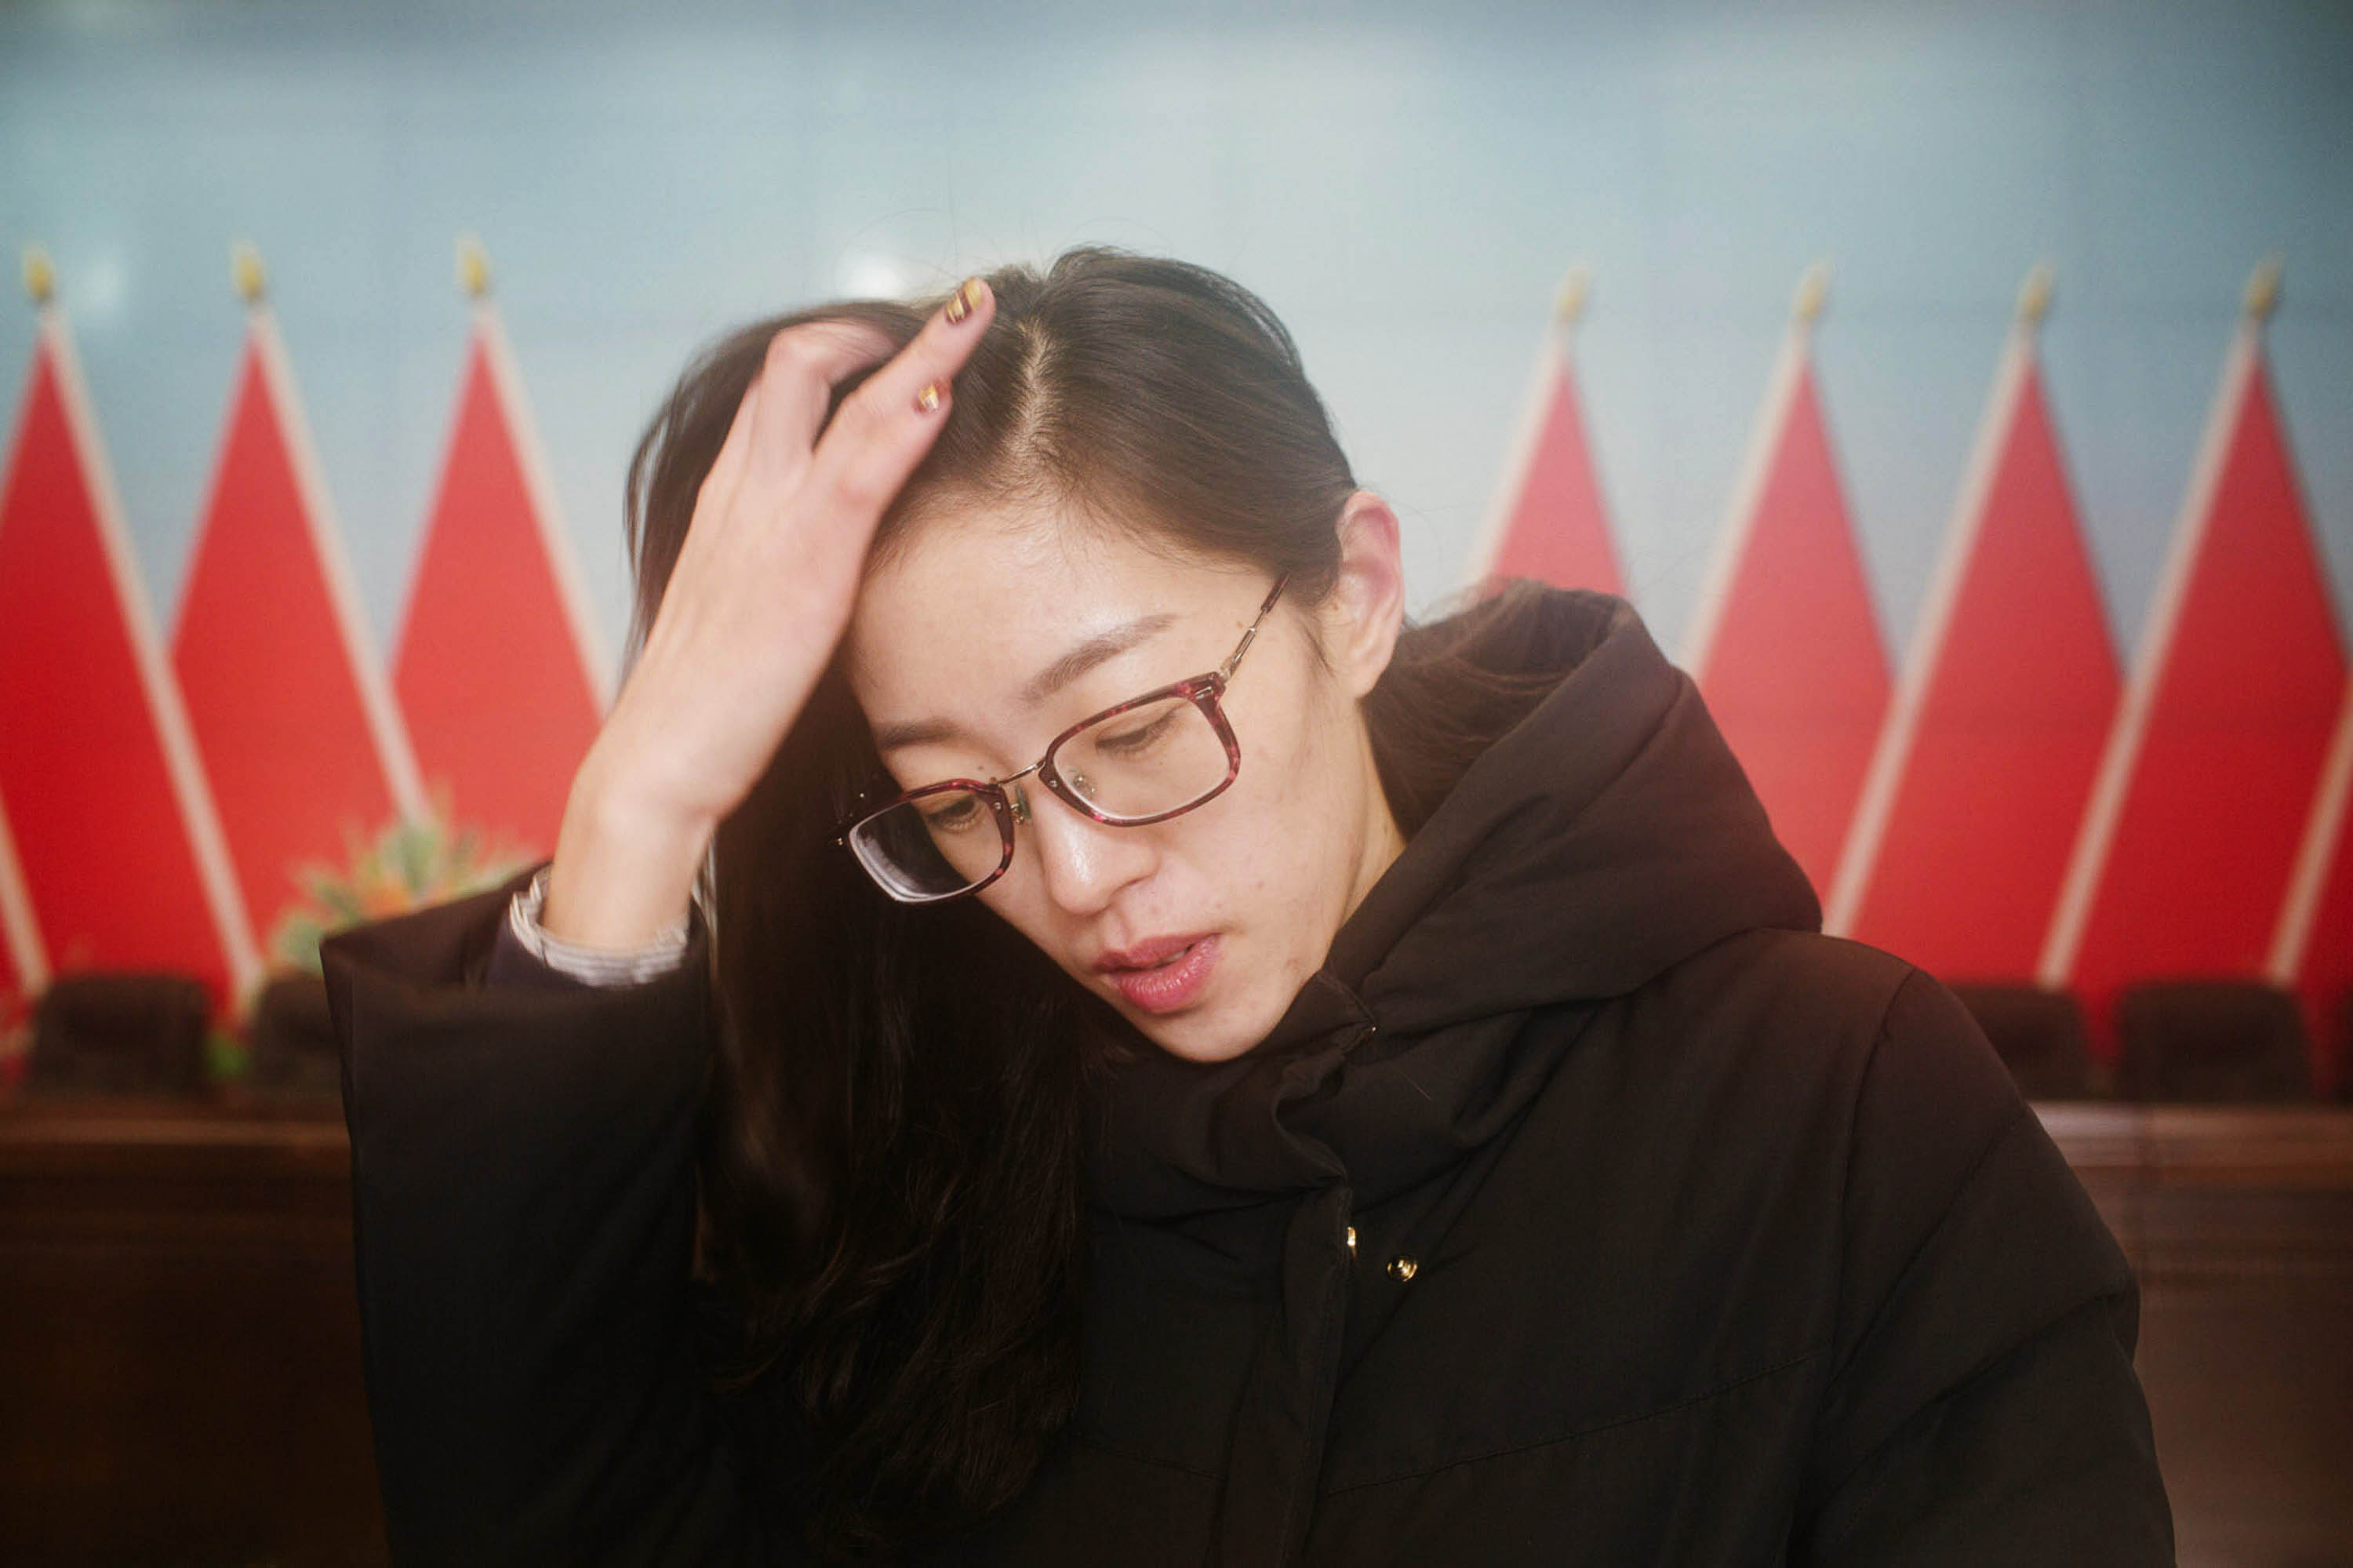 During a conference held to discuss staff restructuring, Ru Dongying waits to sign papers agreeing to the terms of her resignation, Jan. 14 2016. Ru left her job after being told she would have to face internal competition and reapply. Zhou Pinglang/Sixth Tone